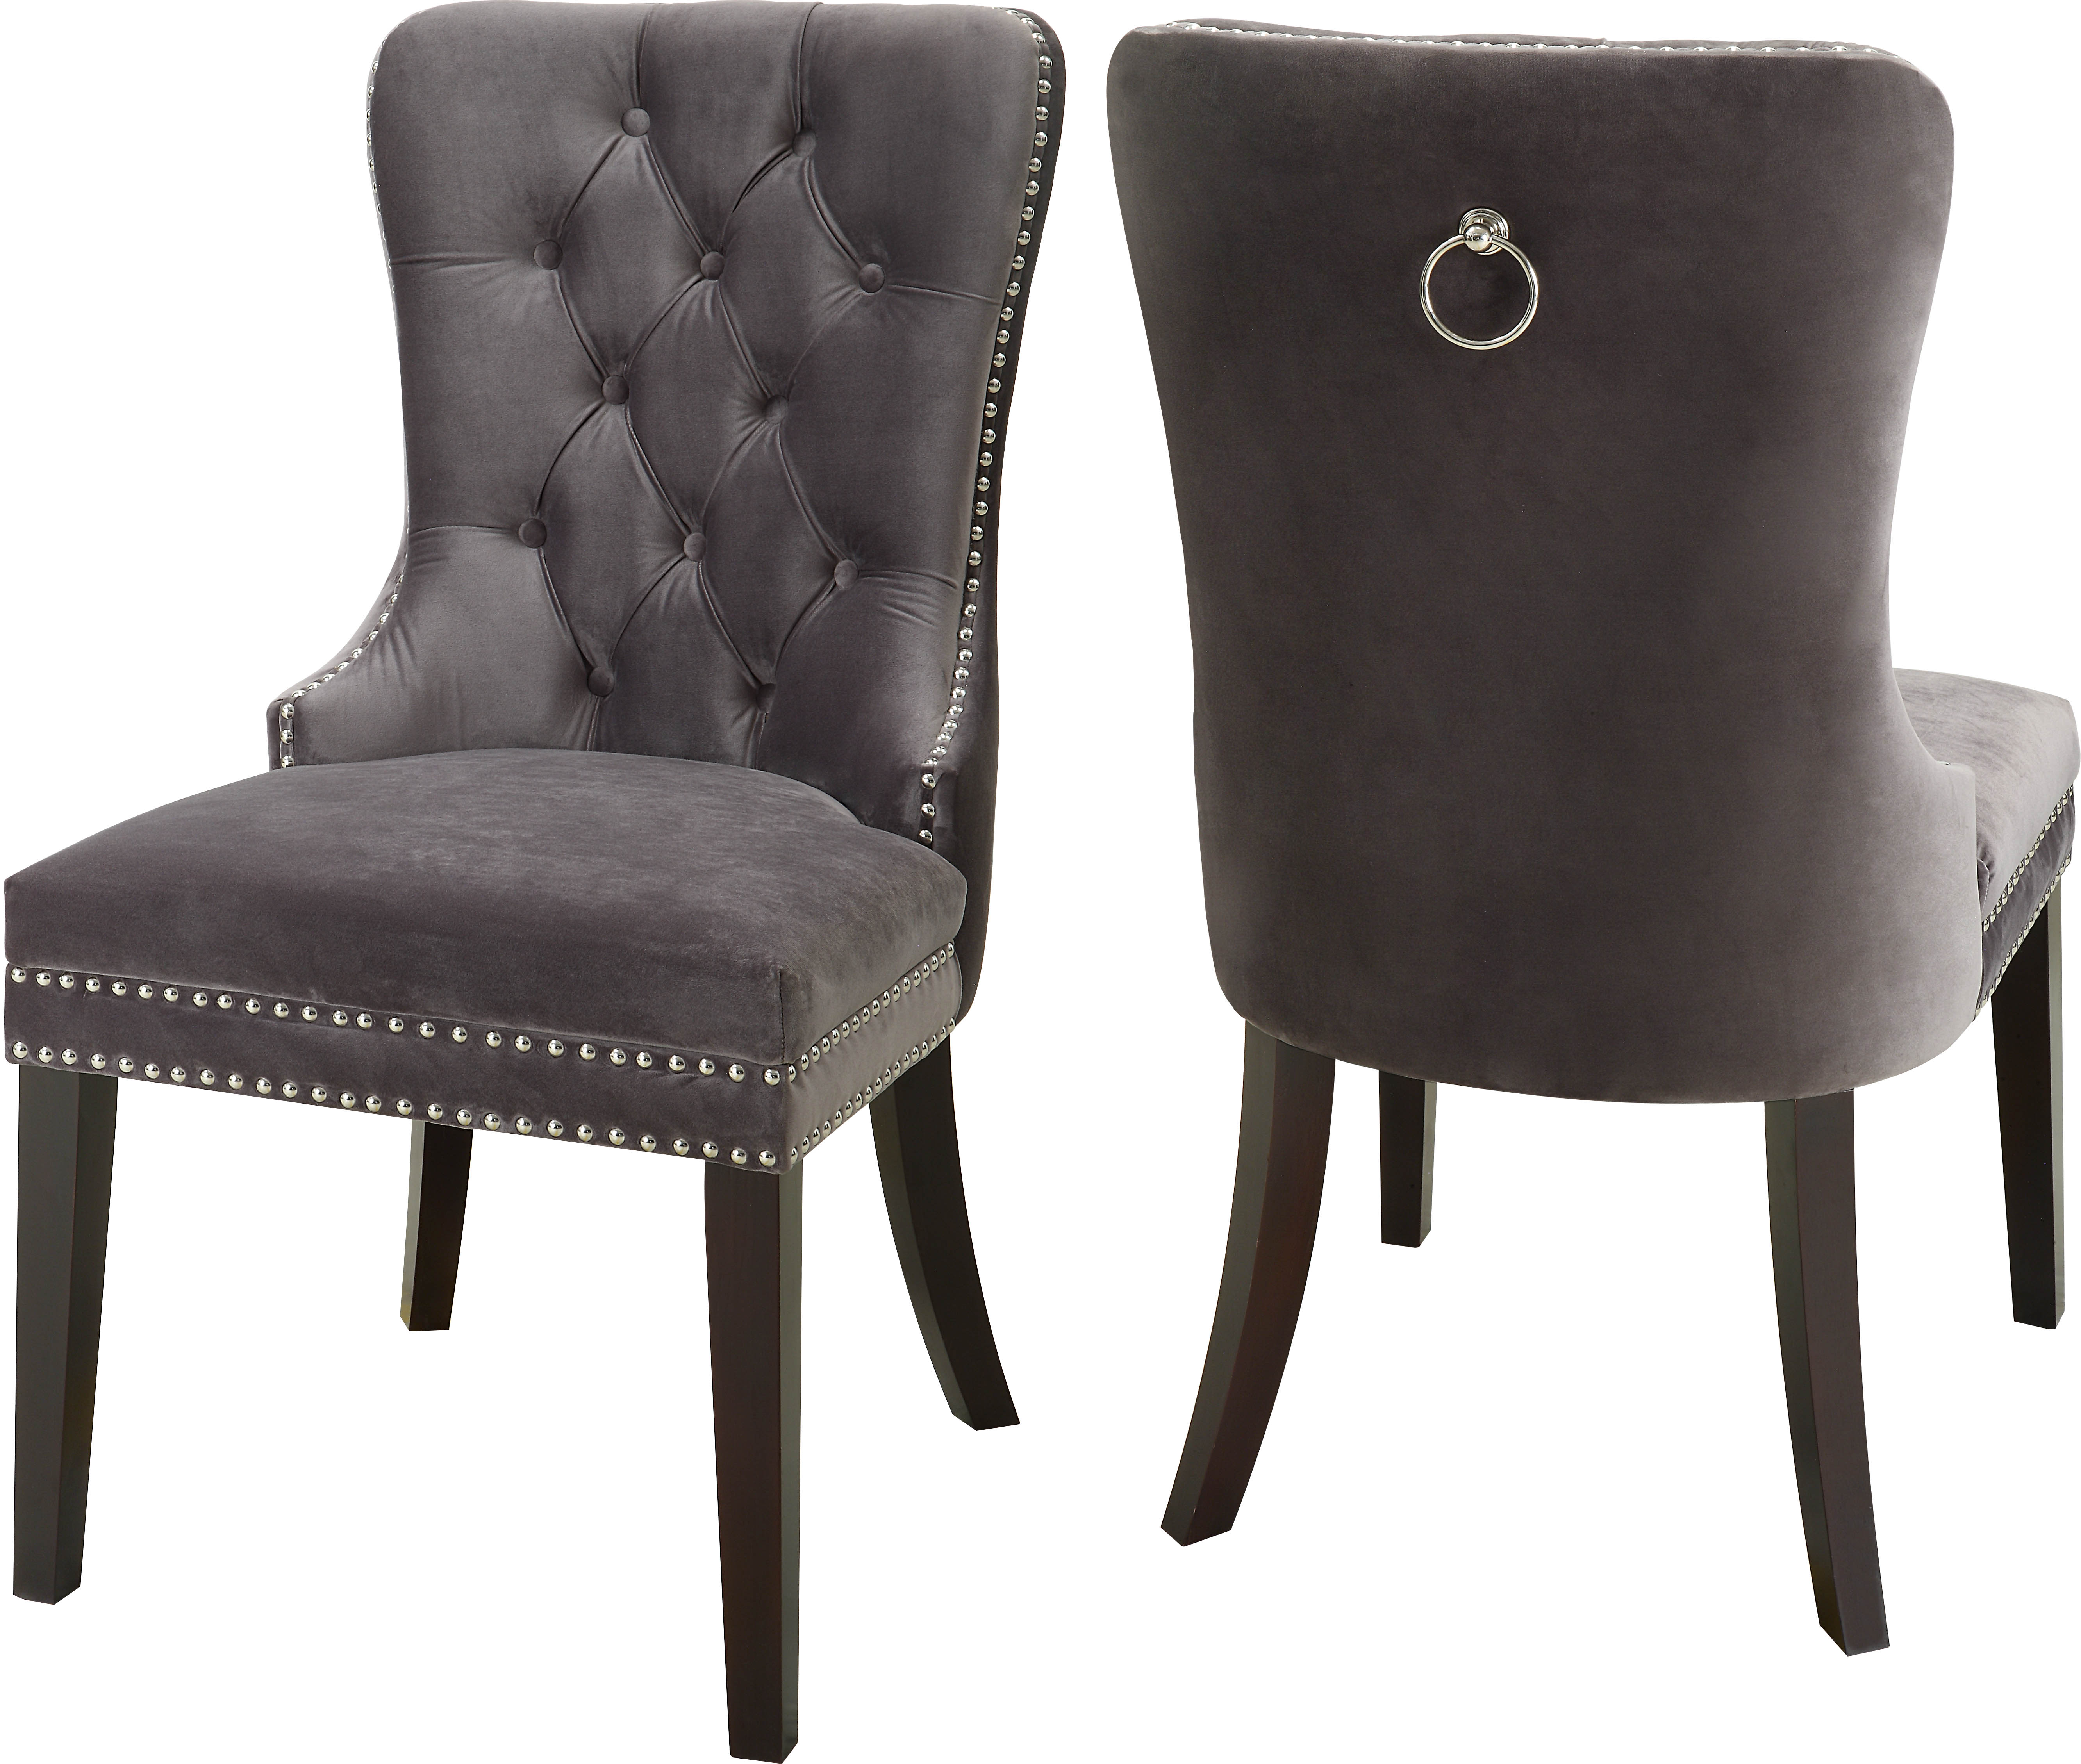 Grey Dining Room Chairs: 2 Meridian Furniture Nikki Grey Velvet Dining Chairs